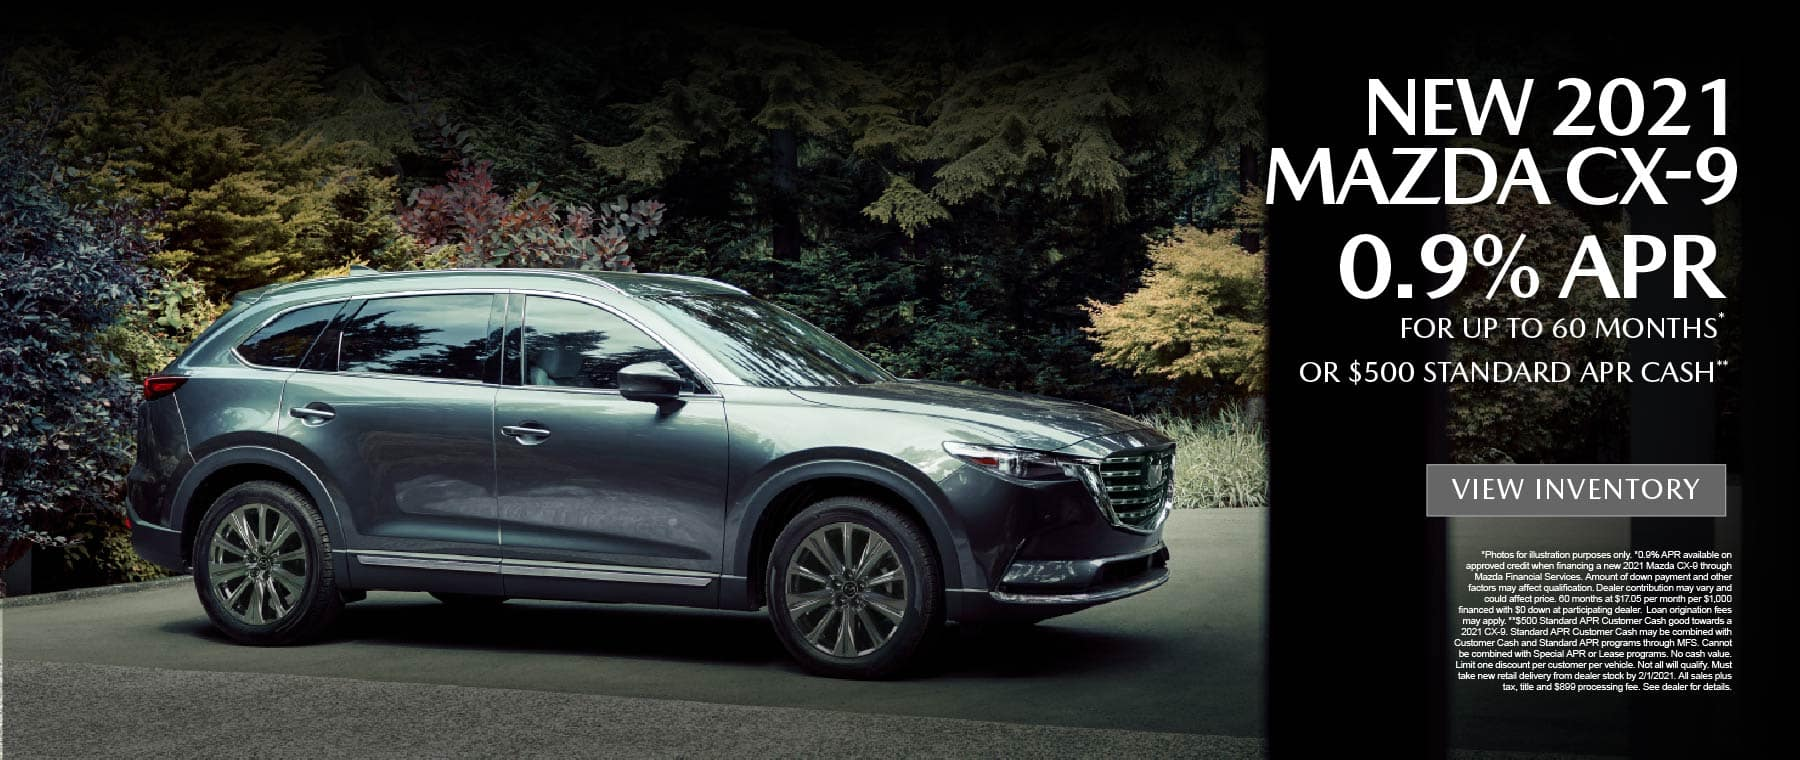 NEW 2021 MAZDA CX-9 0.9% APR for up to 60 months or $500 standard APR cash. View inventory.